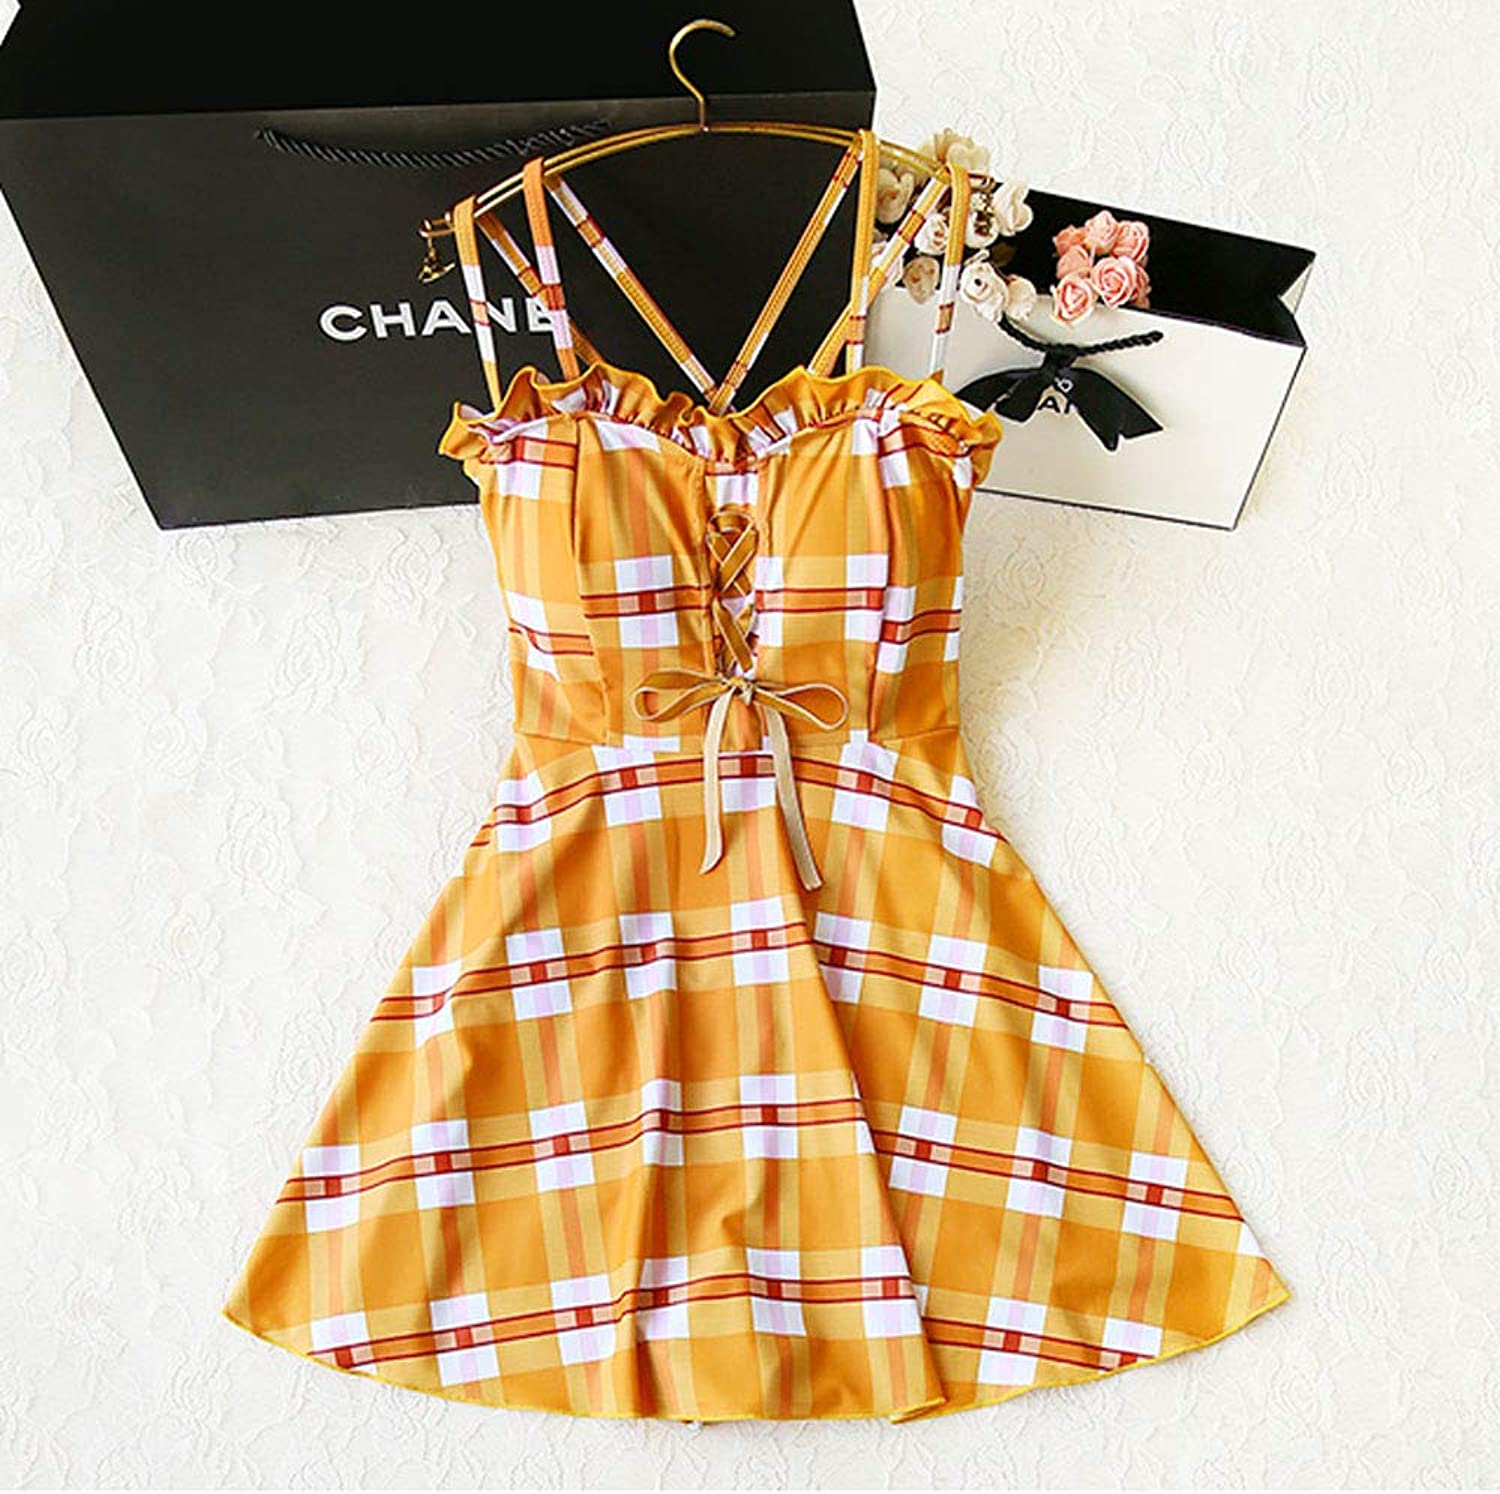 Bathing Suits for Women, High Waisted Swimsuit Yellow Plaid Lace Halter Open Back Dress Swimwear Cute Sexy Swimsuit for Lady's Summer Beach Vacation